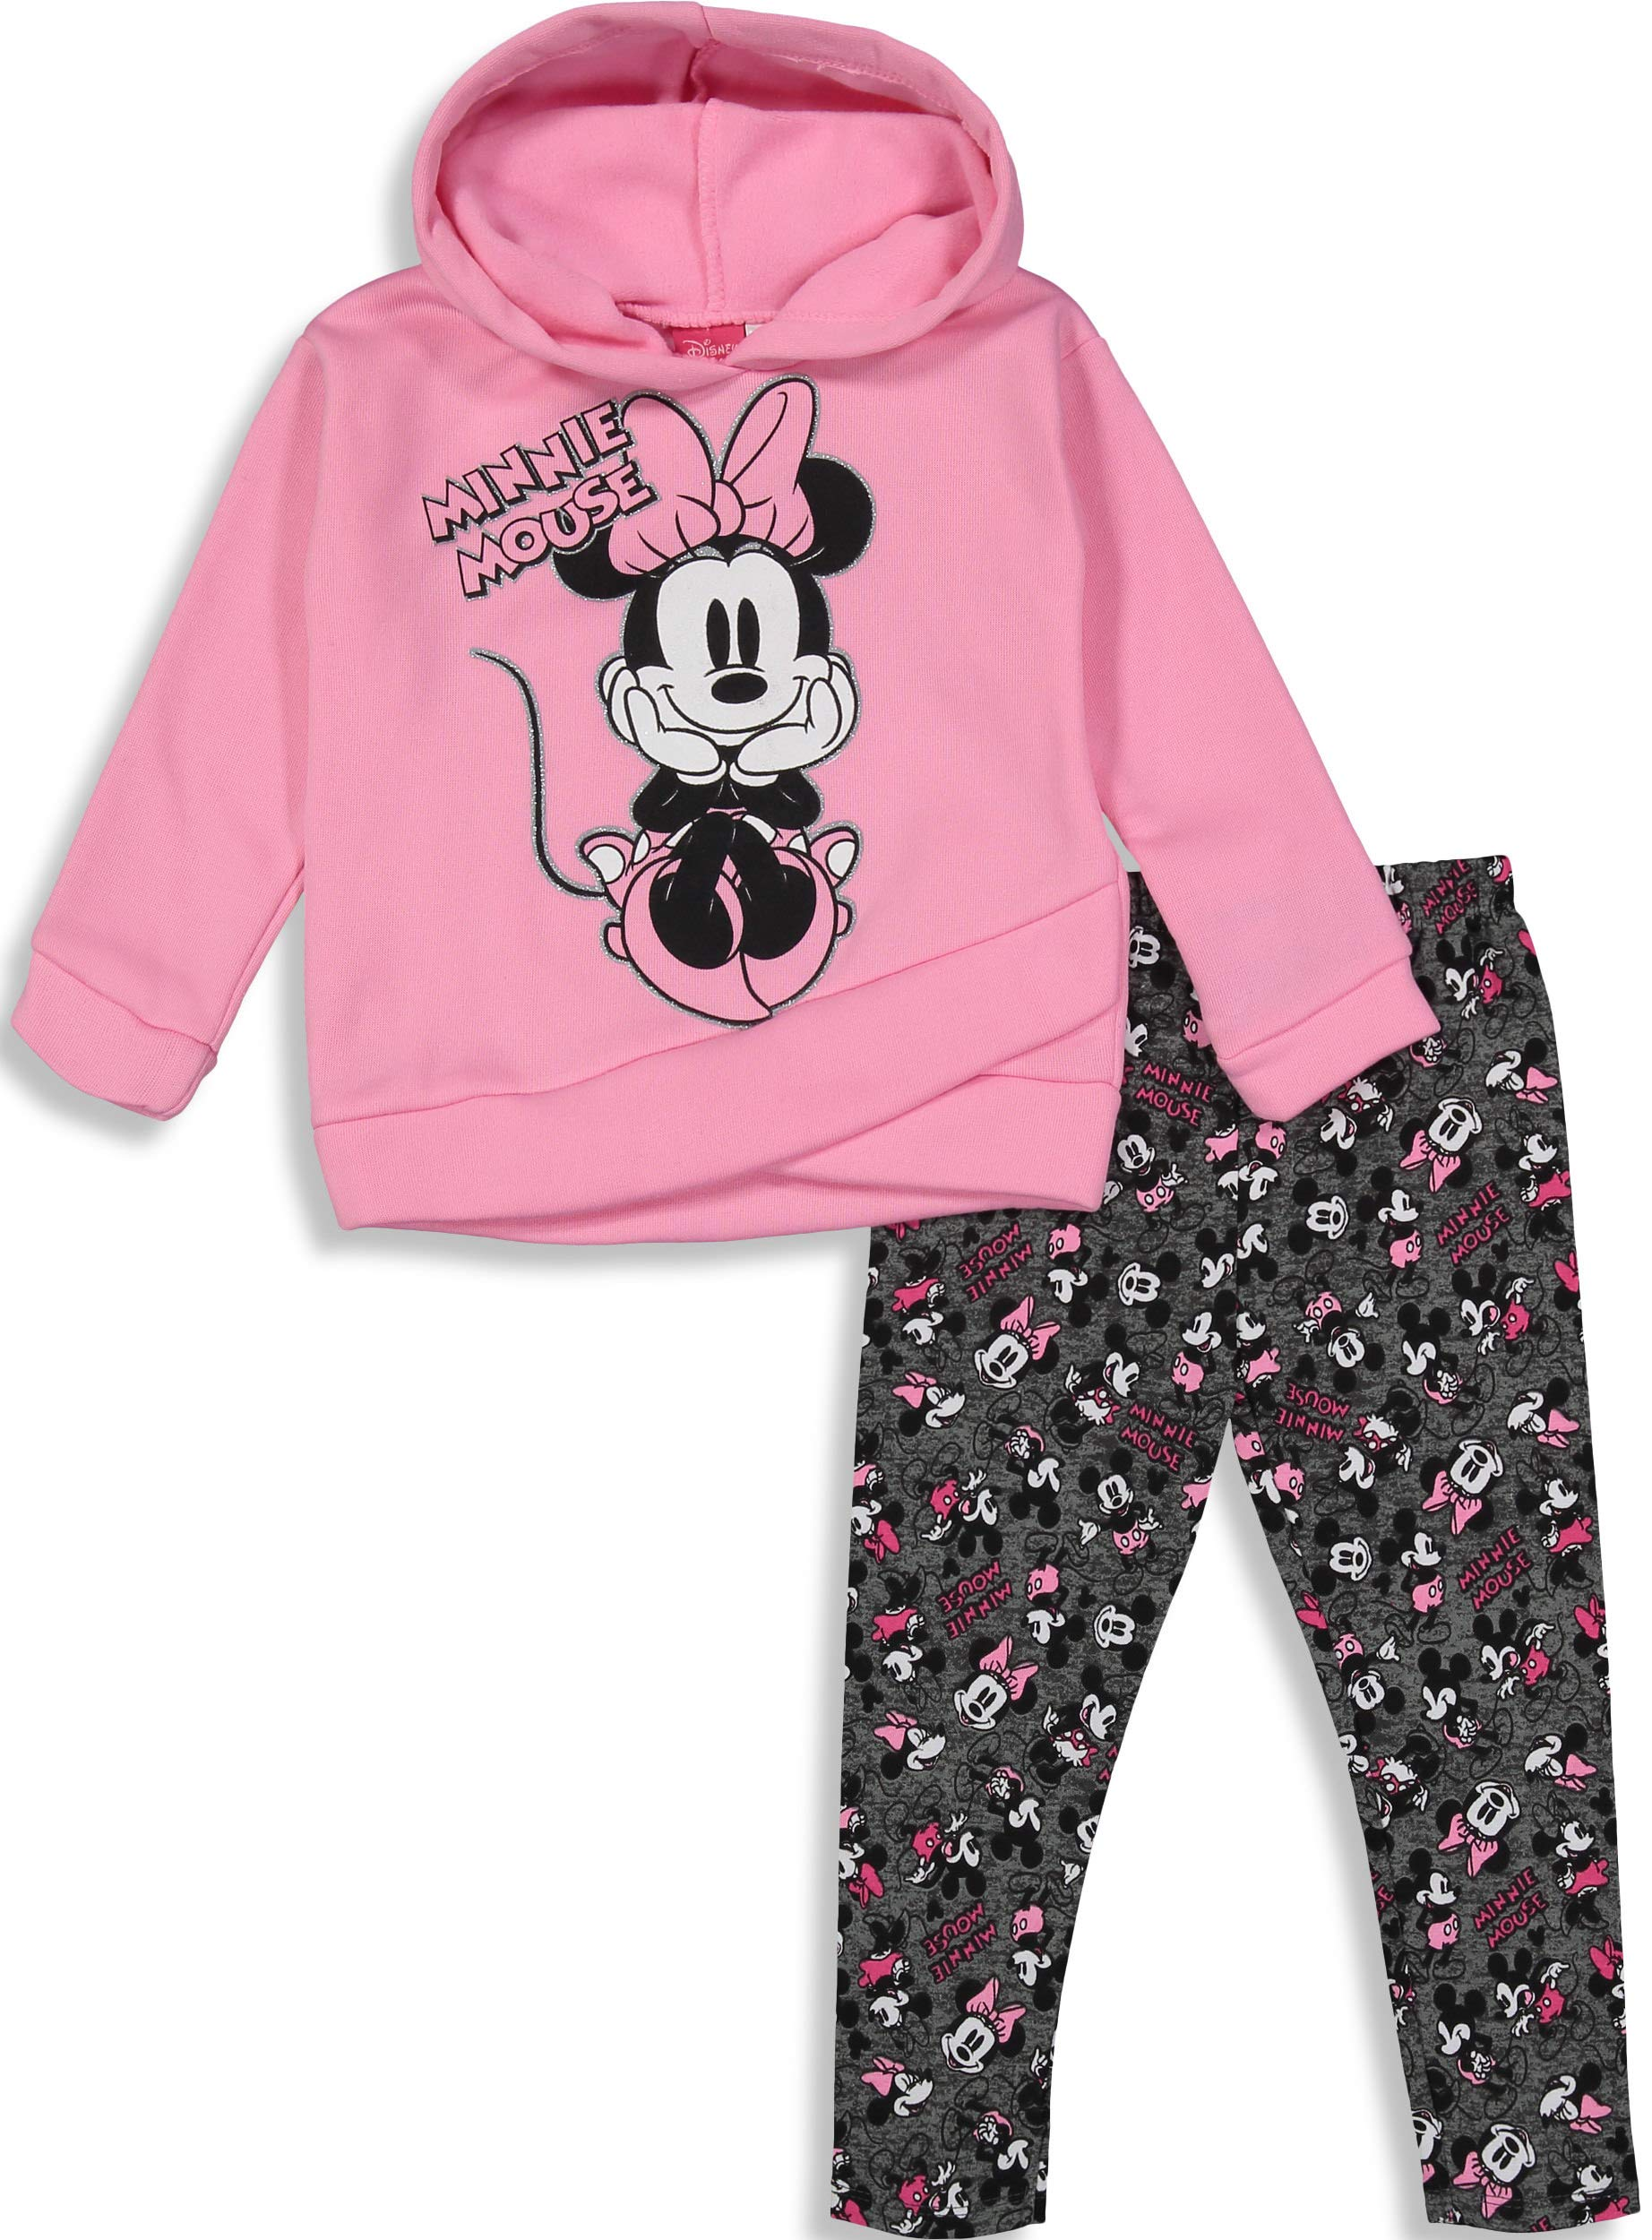 Disney Minnie Mouse Toddler Girls' 2-Piece Fleece Hoodie & Legging Set, Pink Glitter 2T